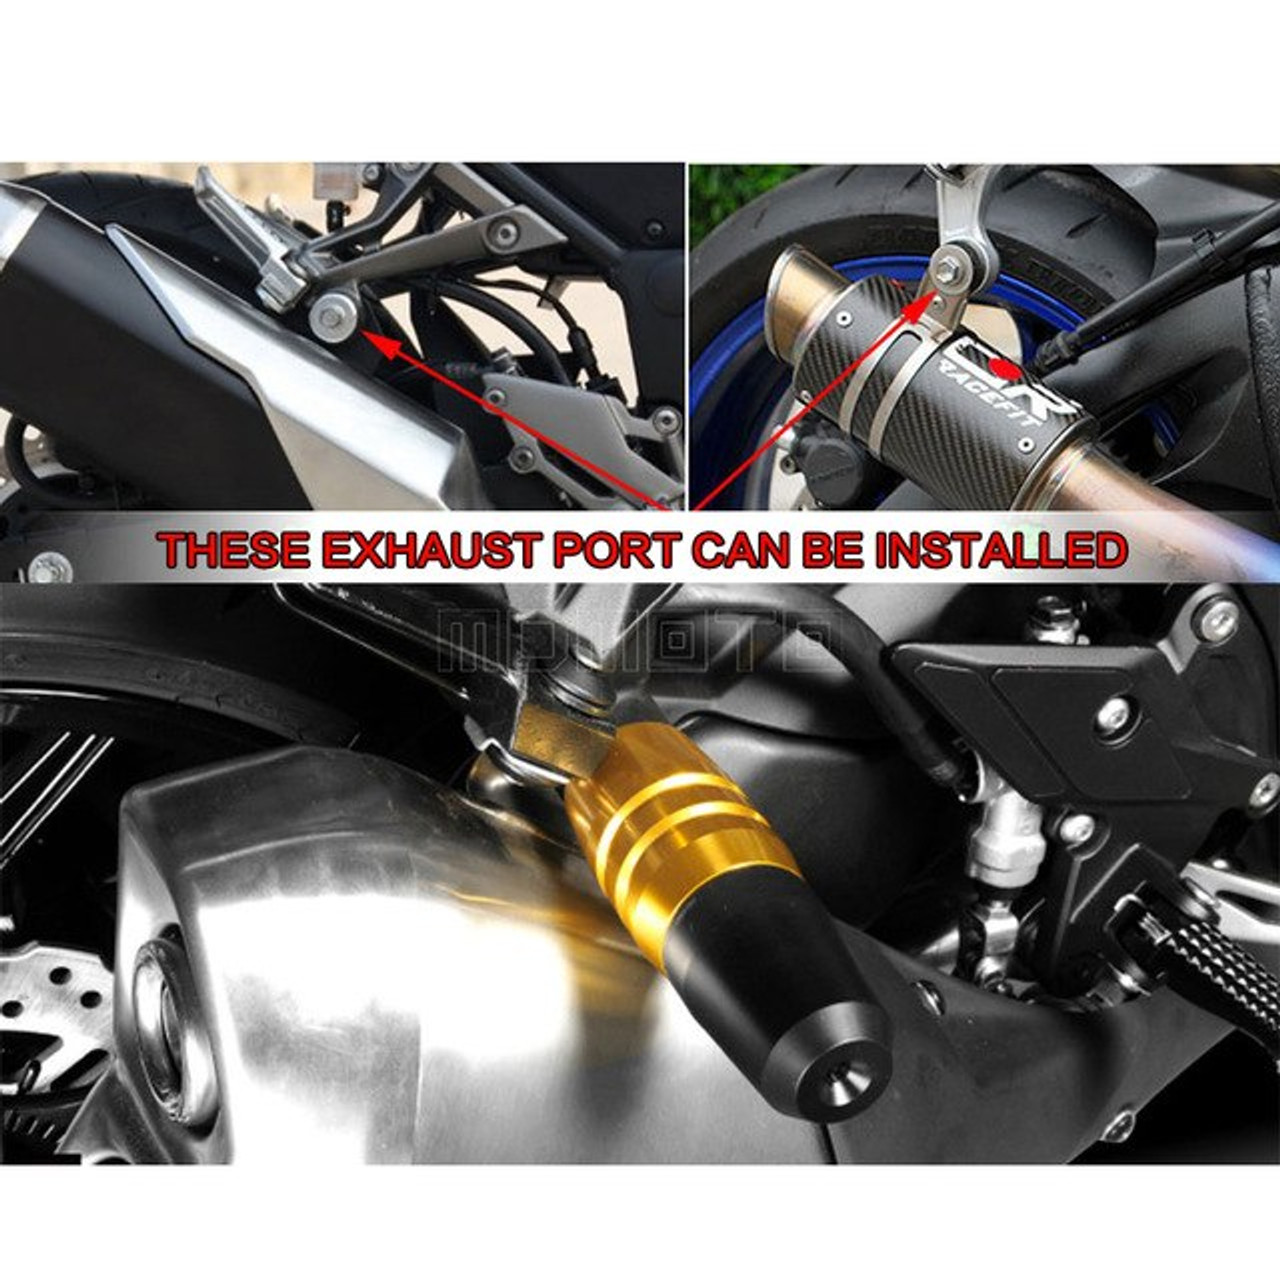 Frame Slider Anti Crash Caps / Exhaust Sliders, Yamaha T-Max 530 T-Max 530, 8mm T-Max 500 R3 R25 R15